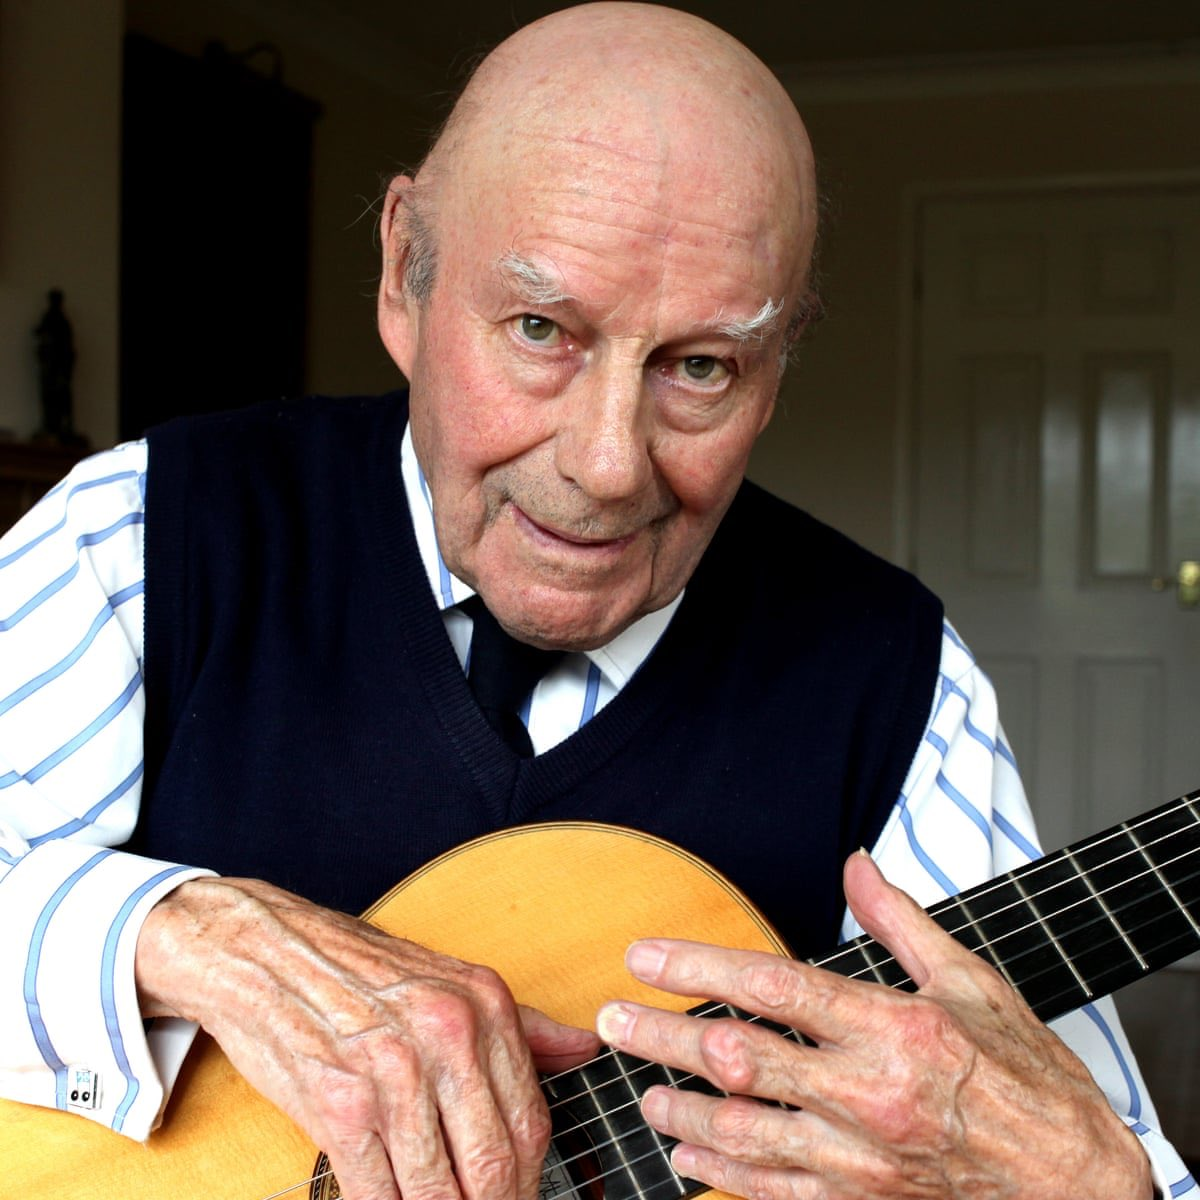 Remembering the great British classical guitarist Julian Bream who died today - but which guitarist did he name his dog after? And what did Vladimir Horowitz do that did not impress his formidable wife? A Classic FM Concert of revelations. Join me 8pm @ClassicFM